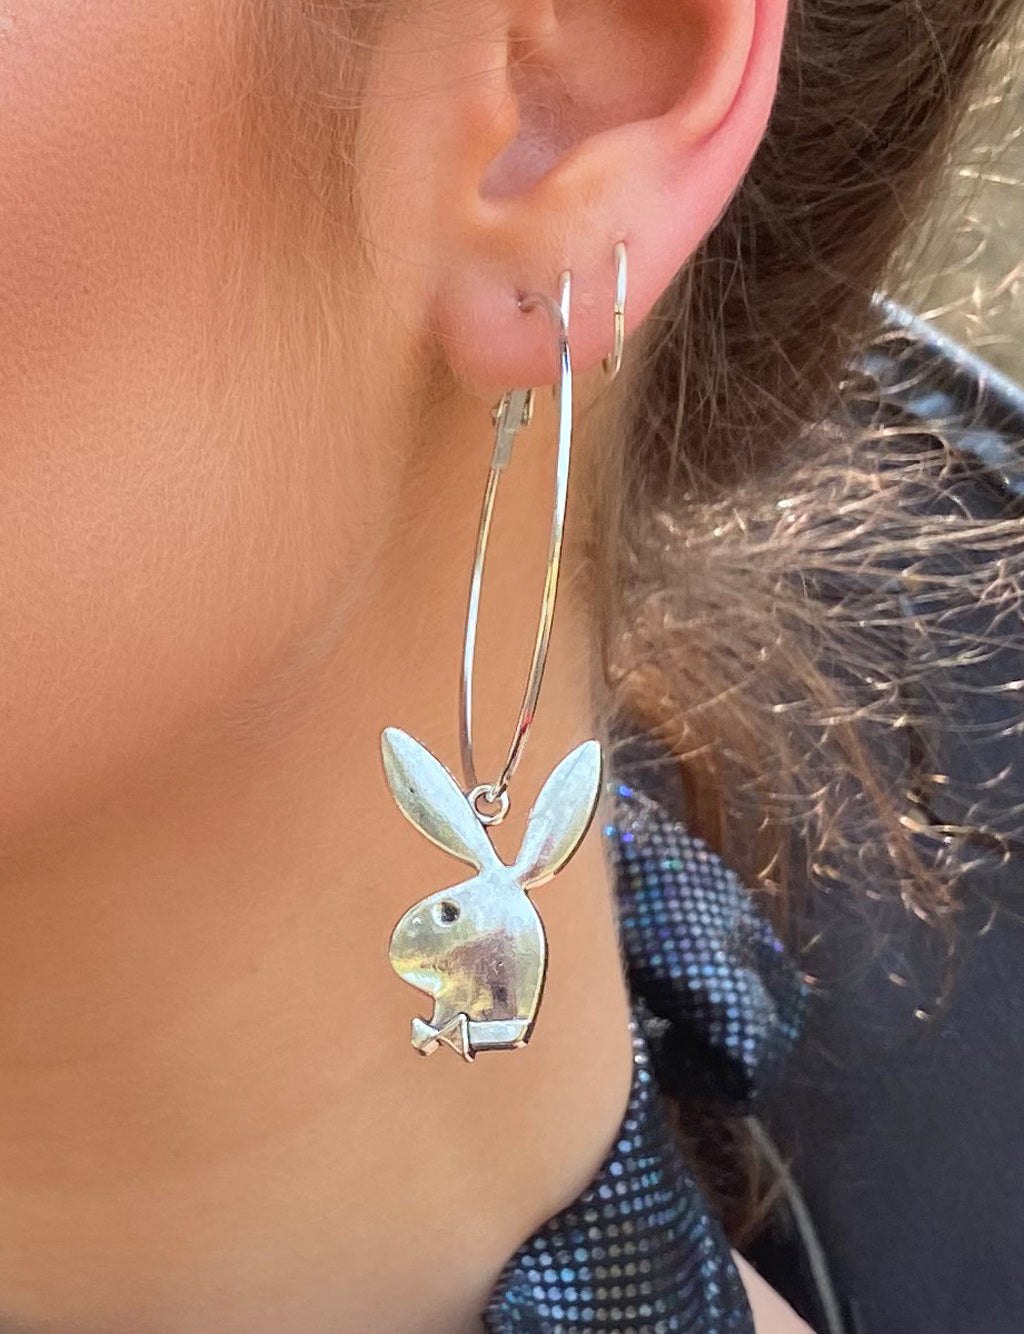 BUNNY EARRINGS - MEDIUM SILVER HOOP